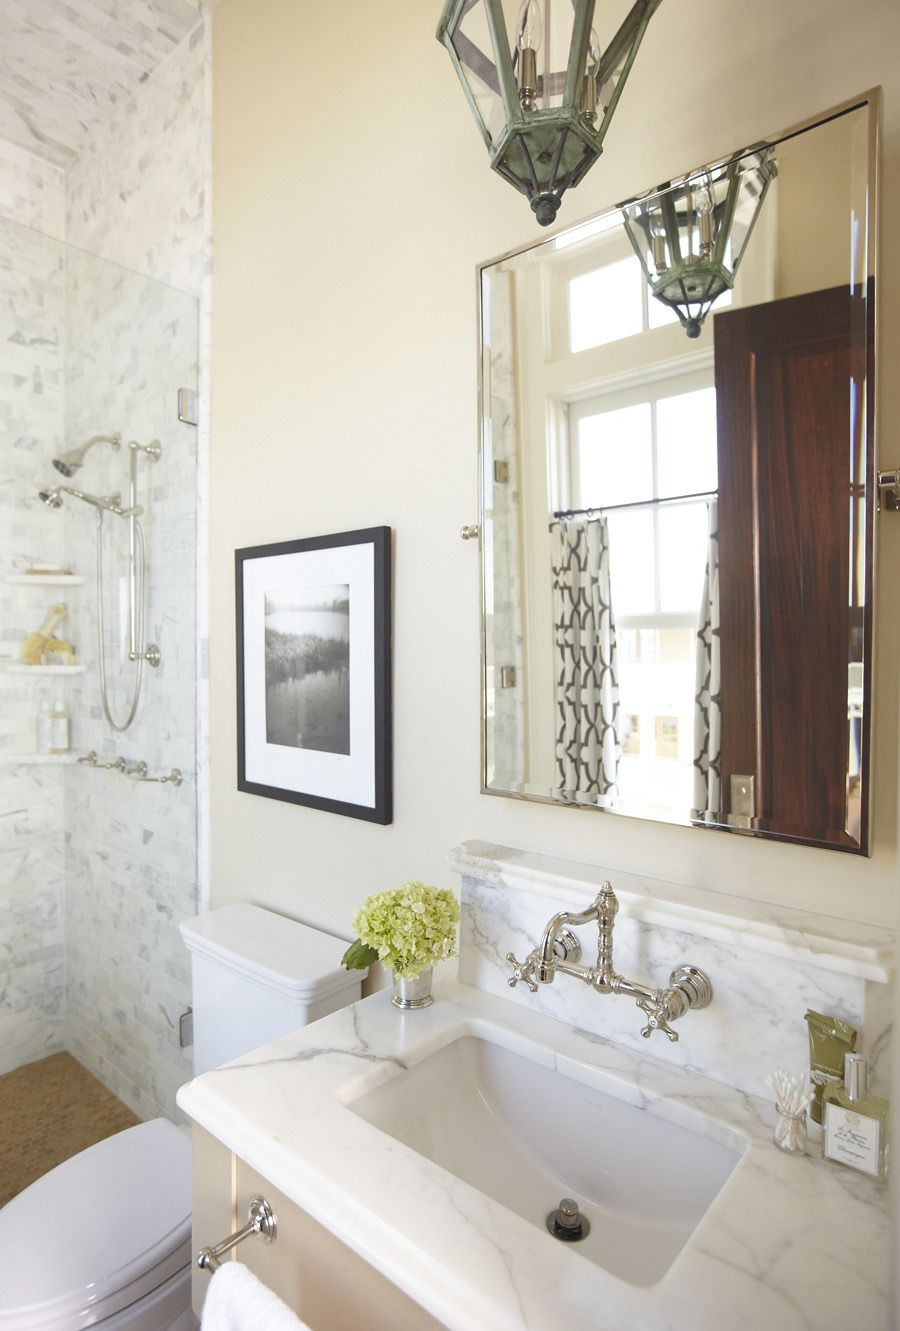 Bathroom Design Tips Master Bathroom Design Tips From Urban Grace  Master Bathrooms